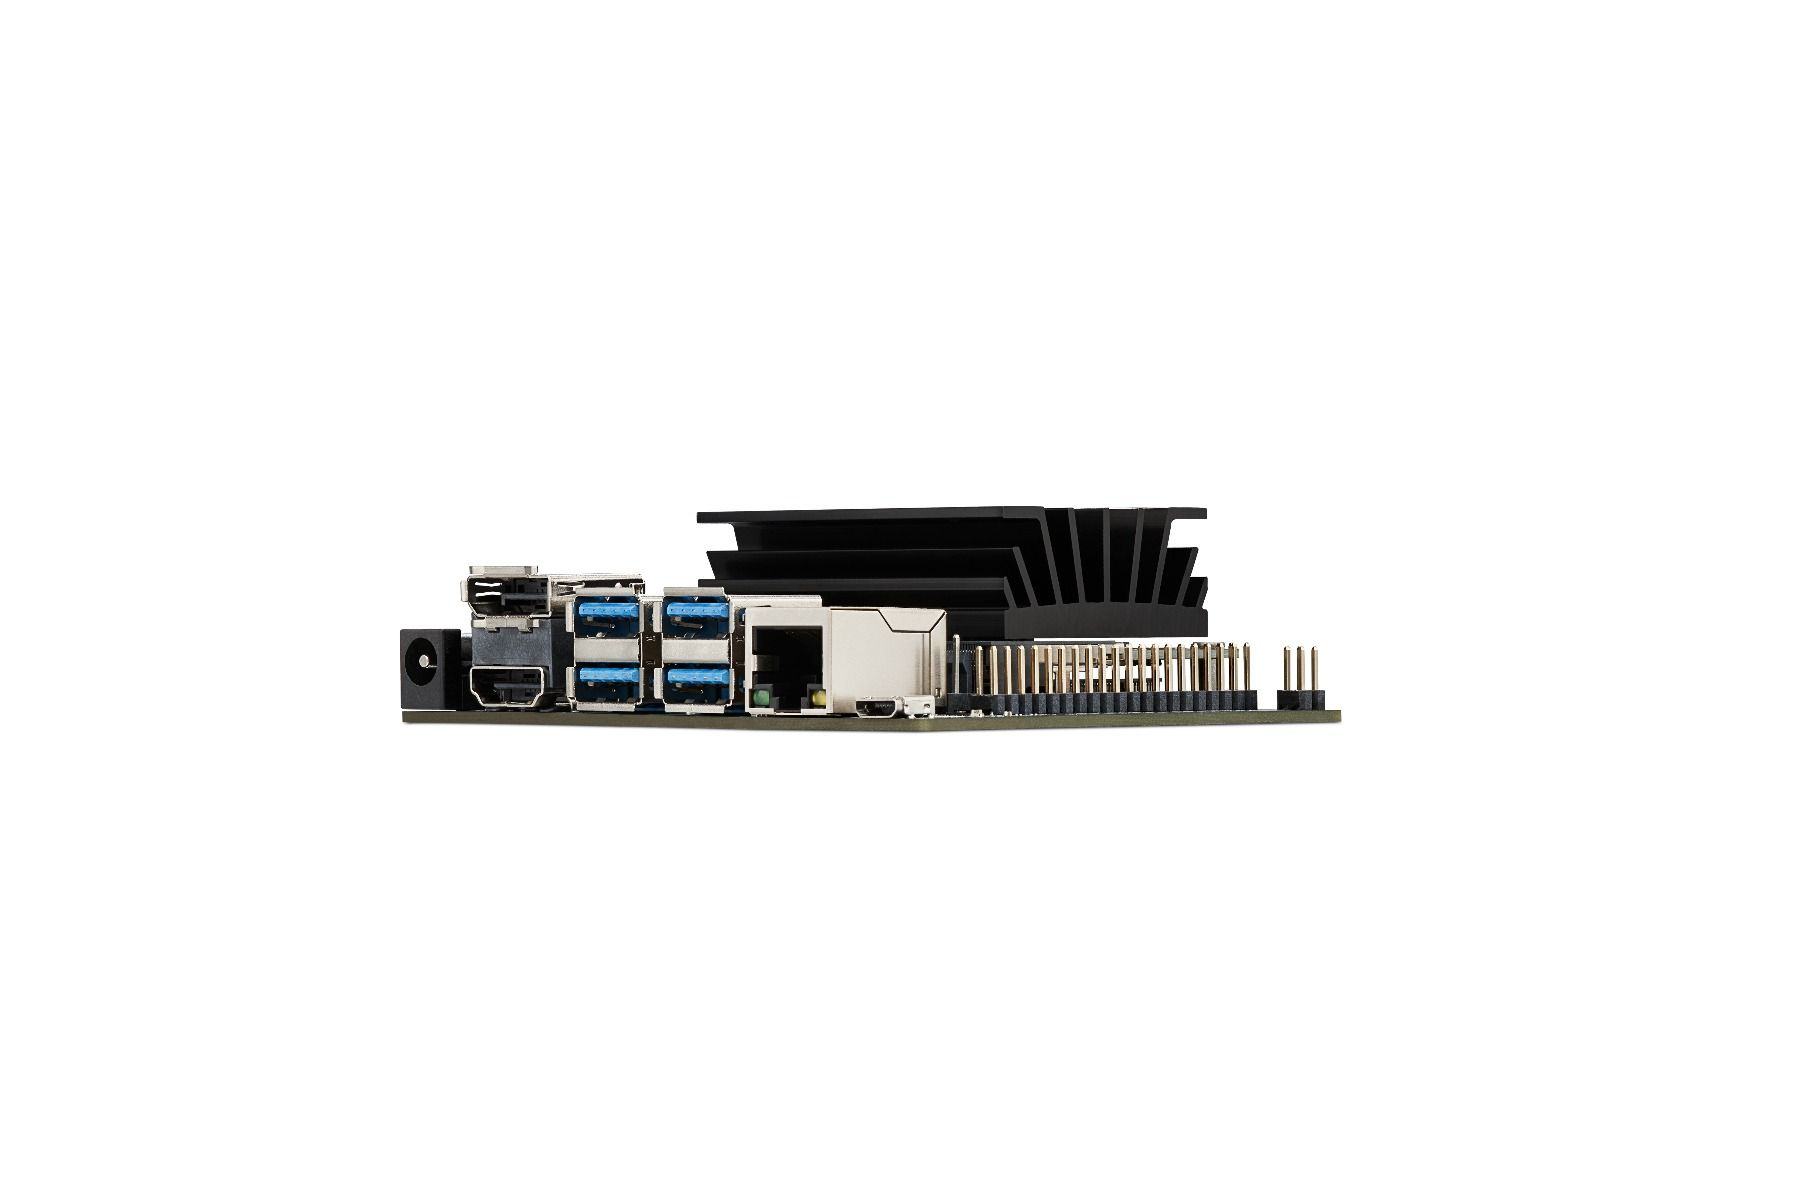 The NVIDIA Jetson Nano Developer Kit, a powerful SBC smaller